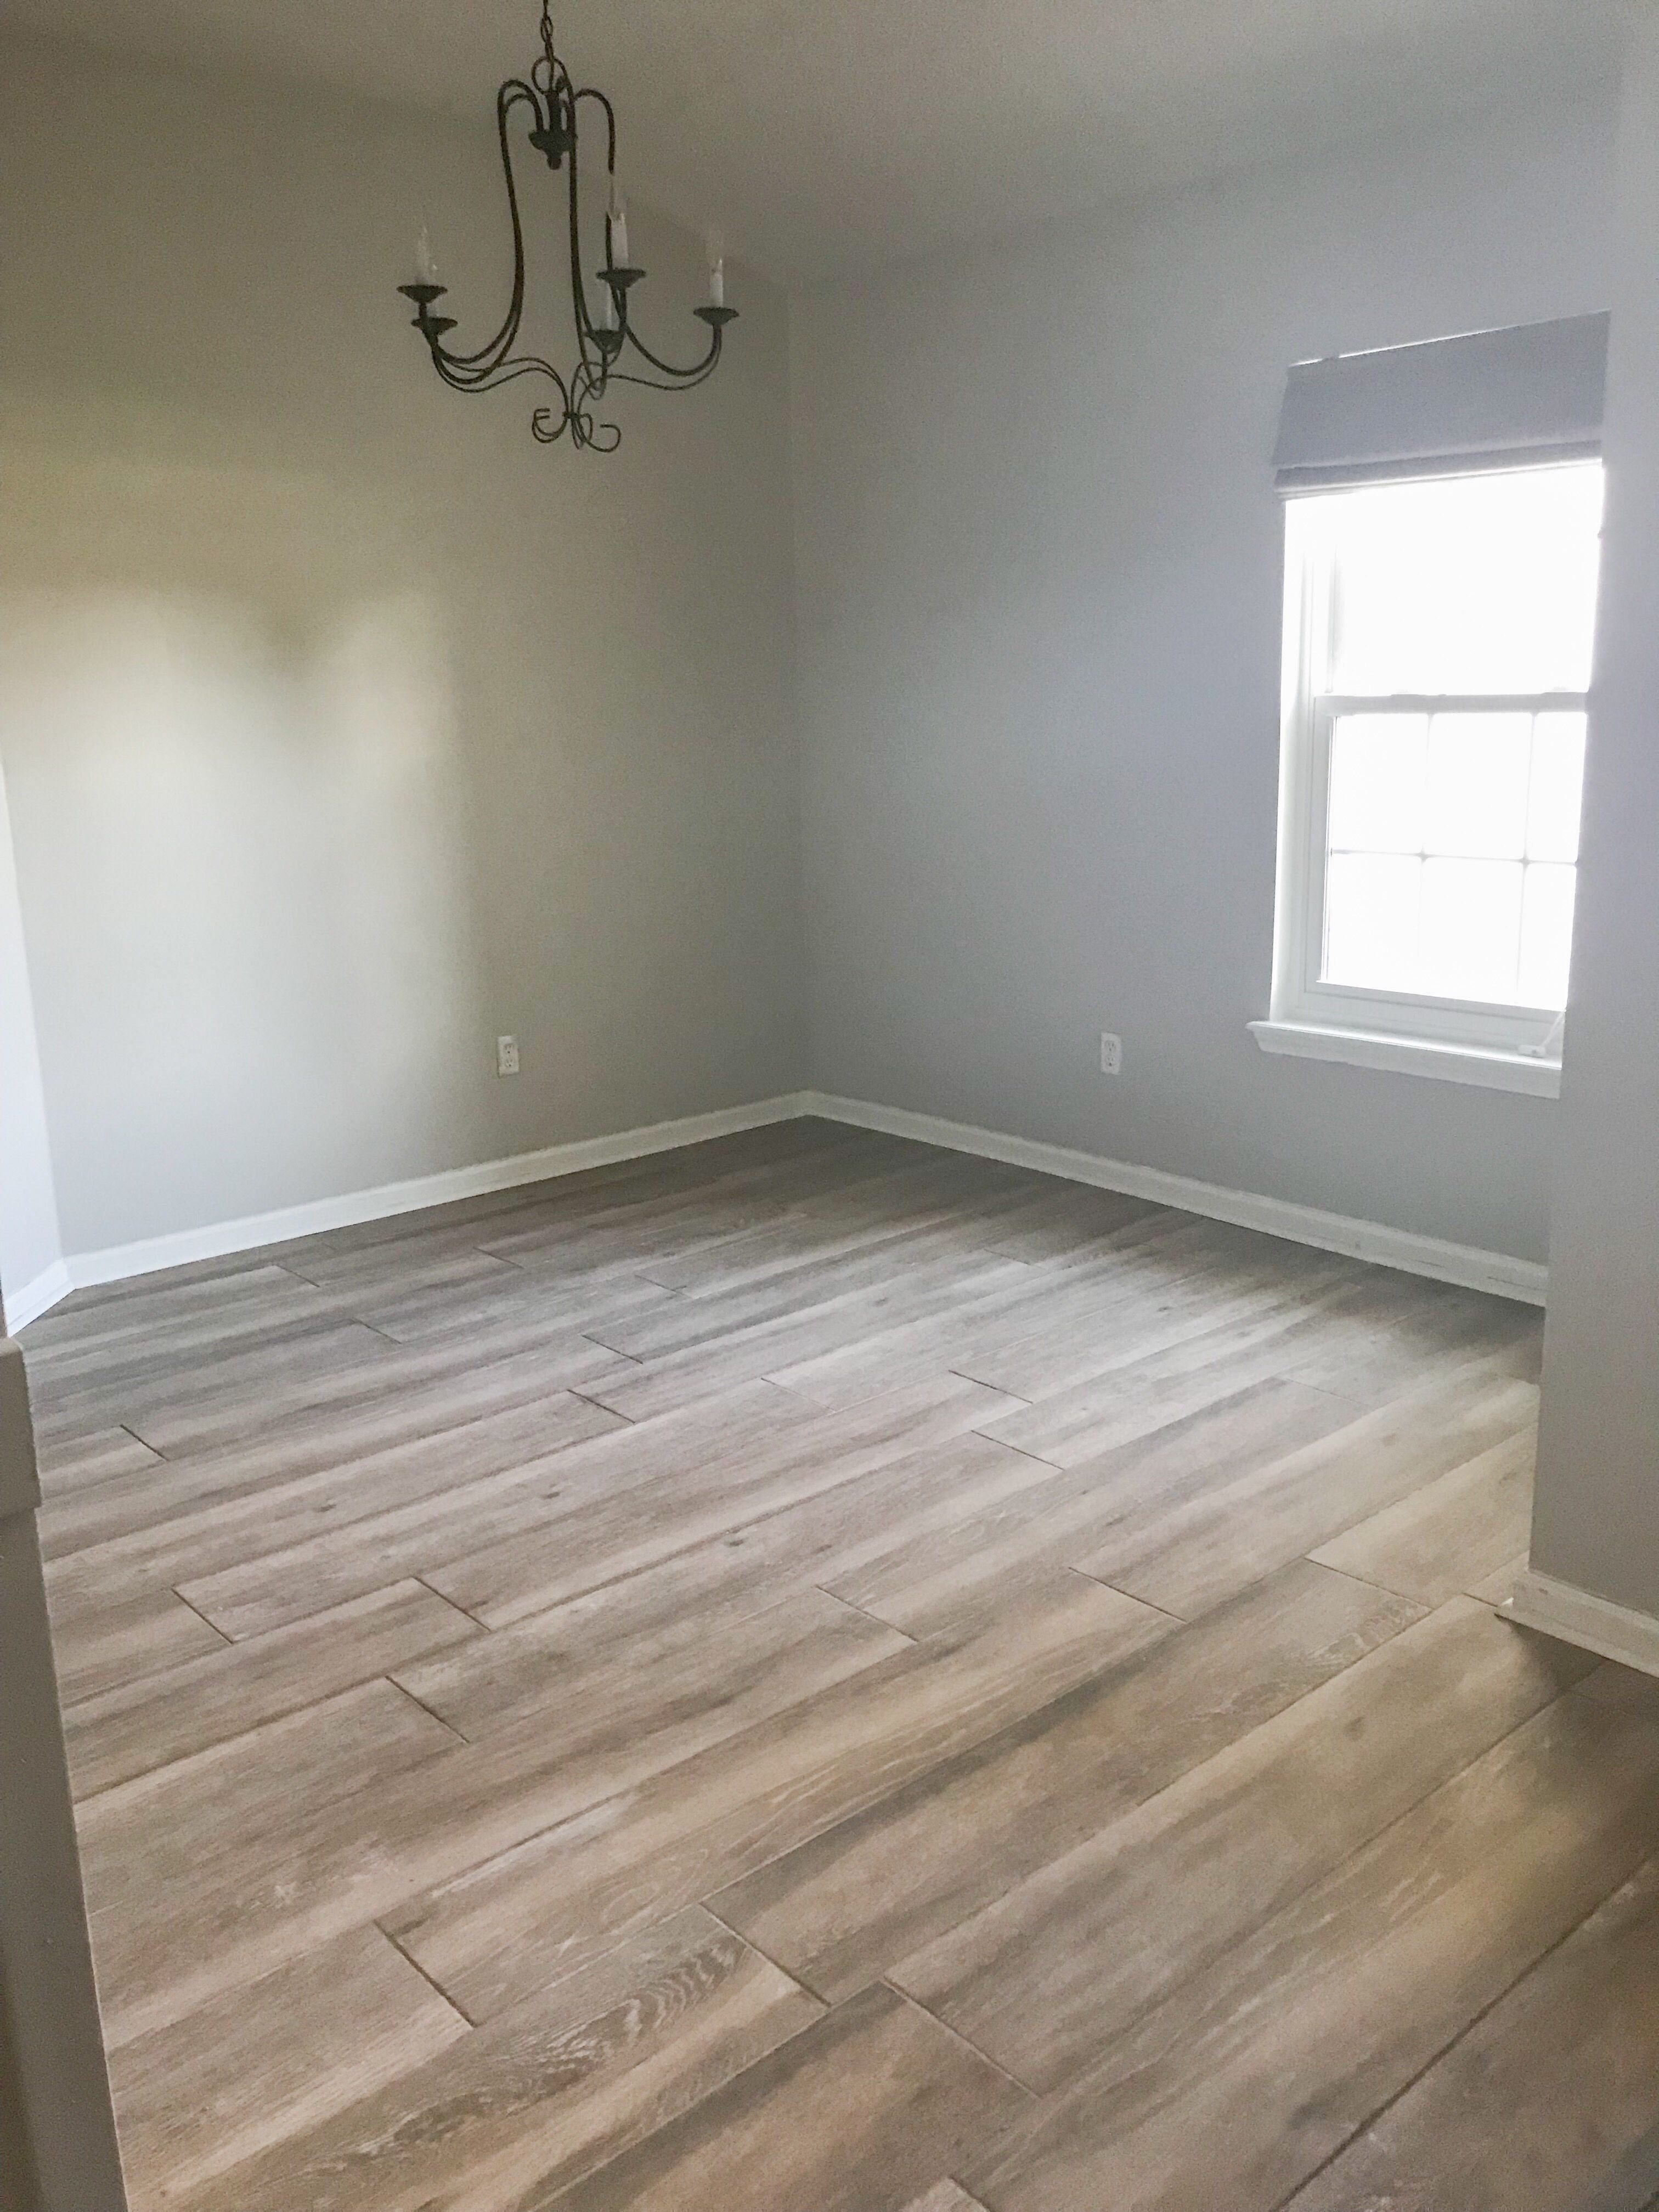 How long does it take to paint a house interior with a sprayer